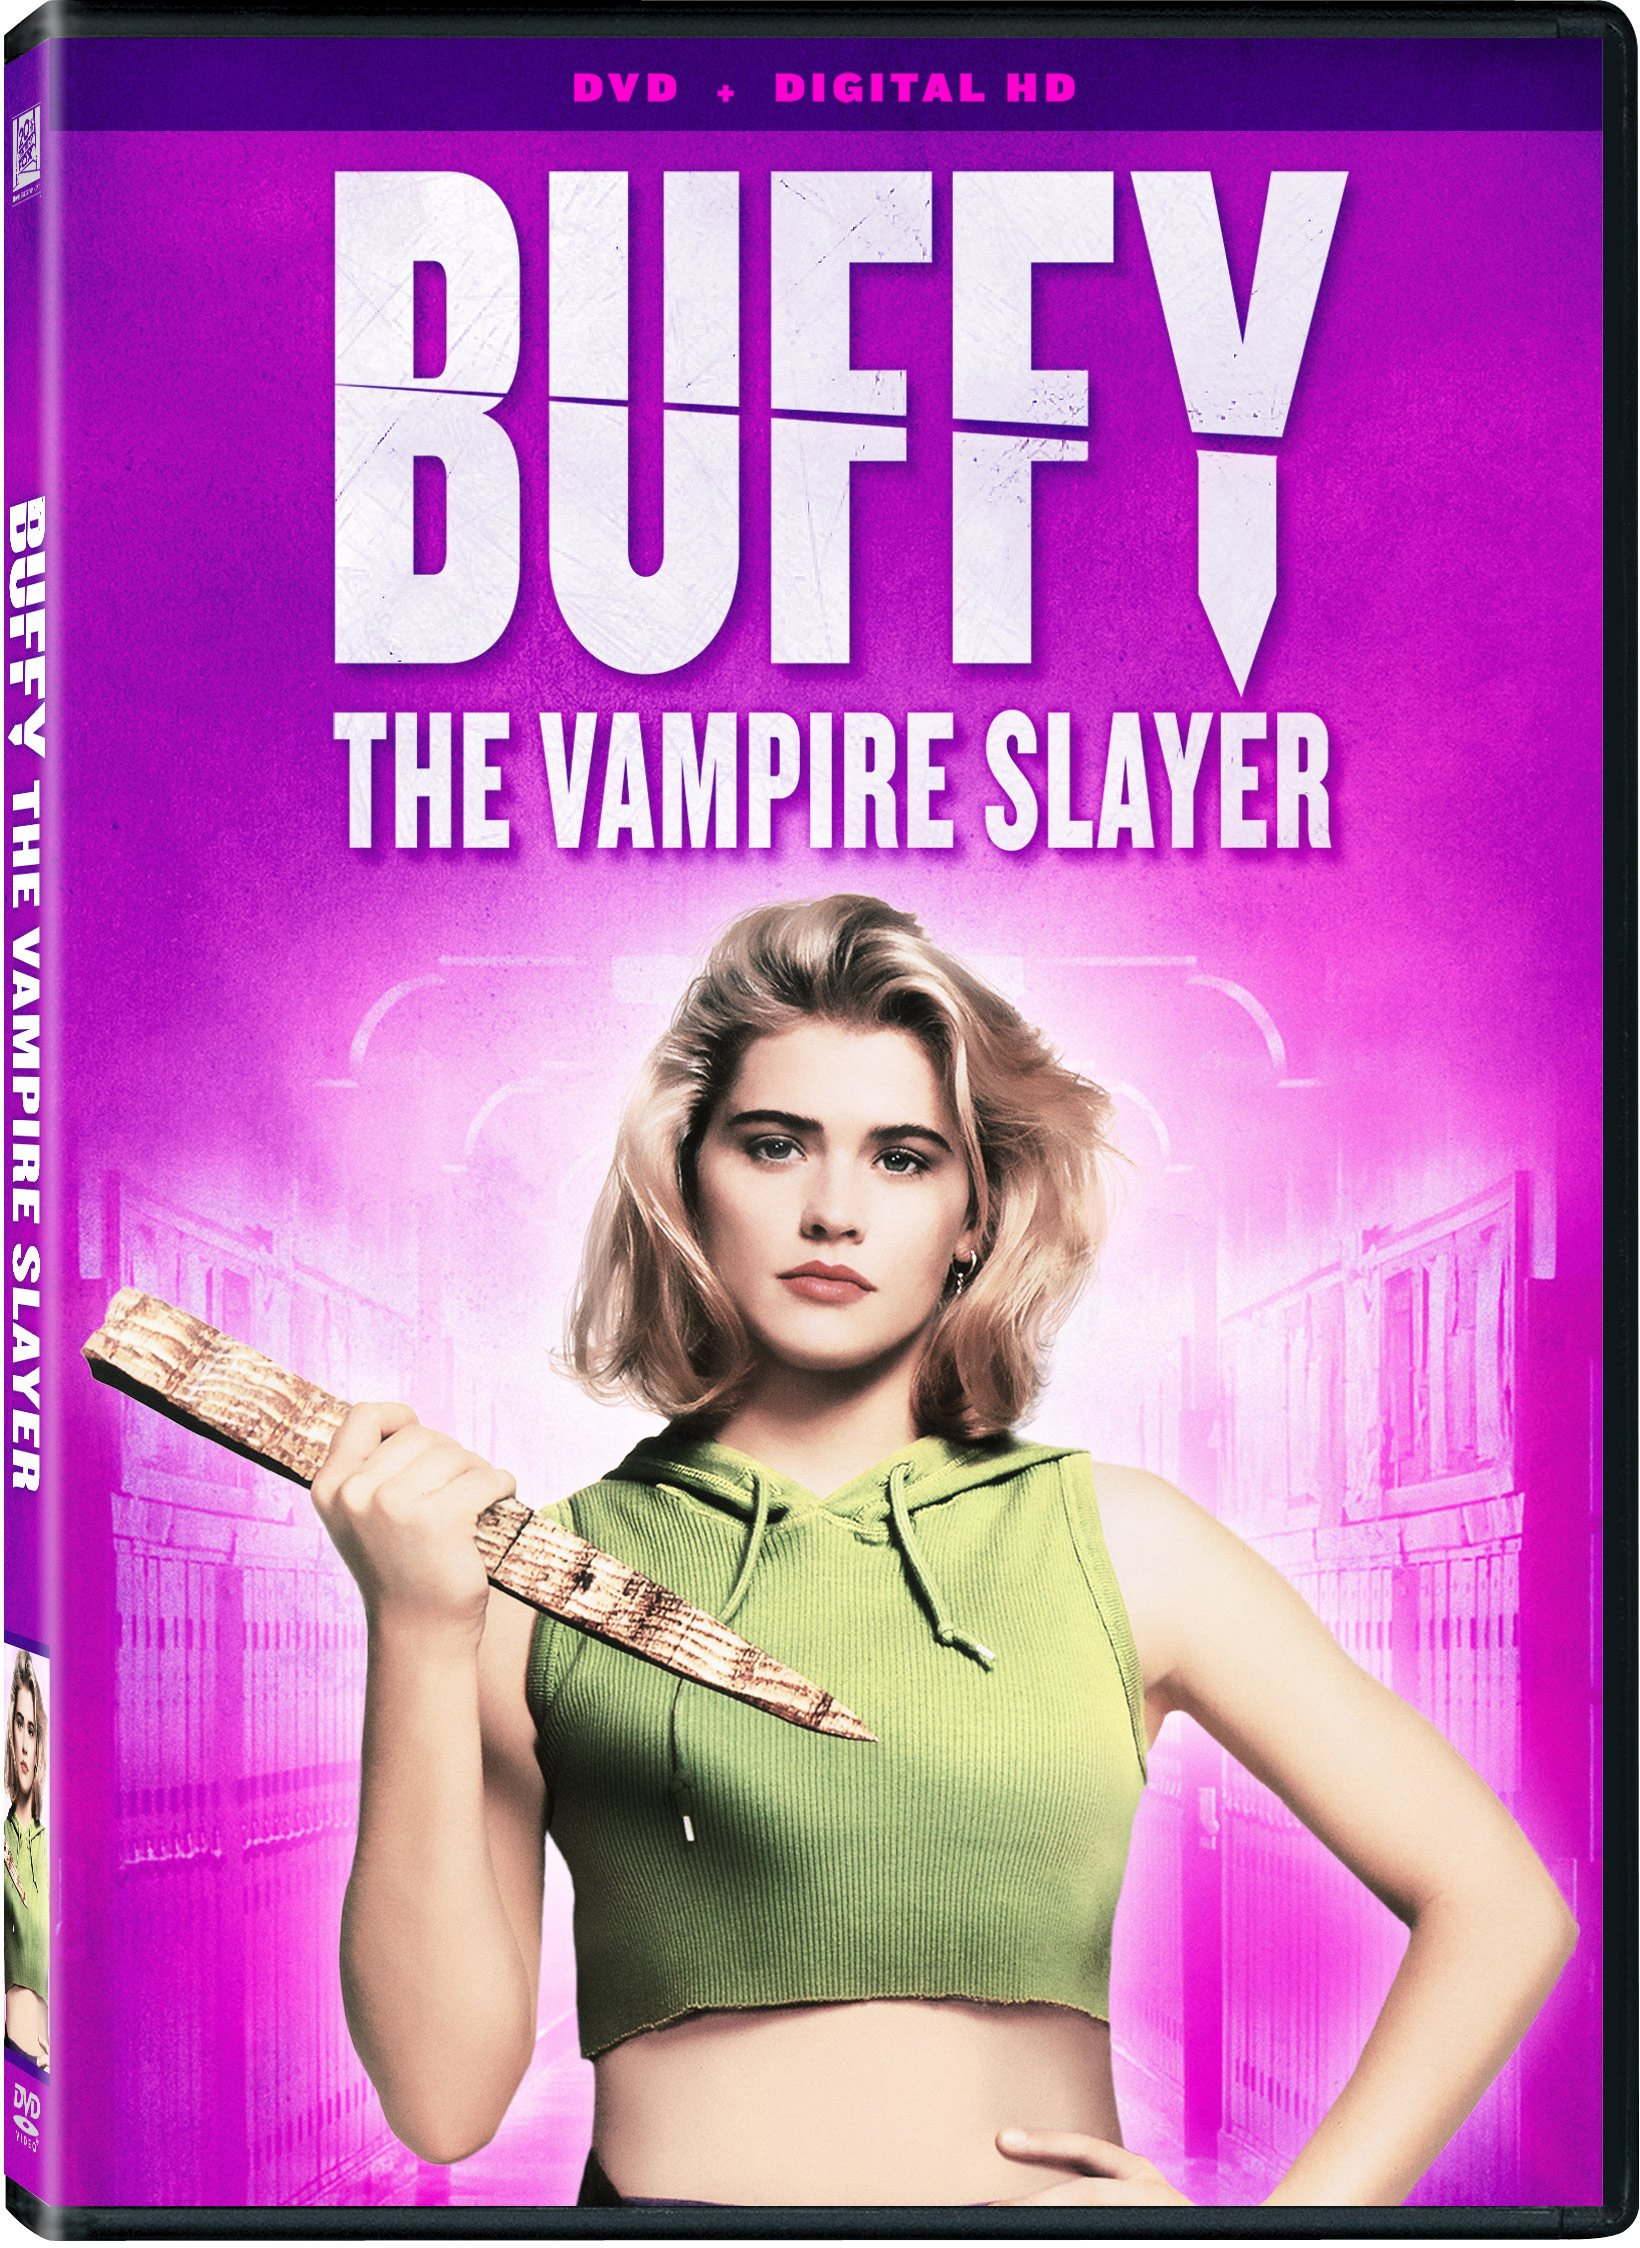 DVD : Buffy the Vampire Slayer (25th Anniversary) (Anniversary Edition, Widescreen, , Dubbed, Dolby)